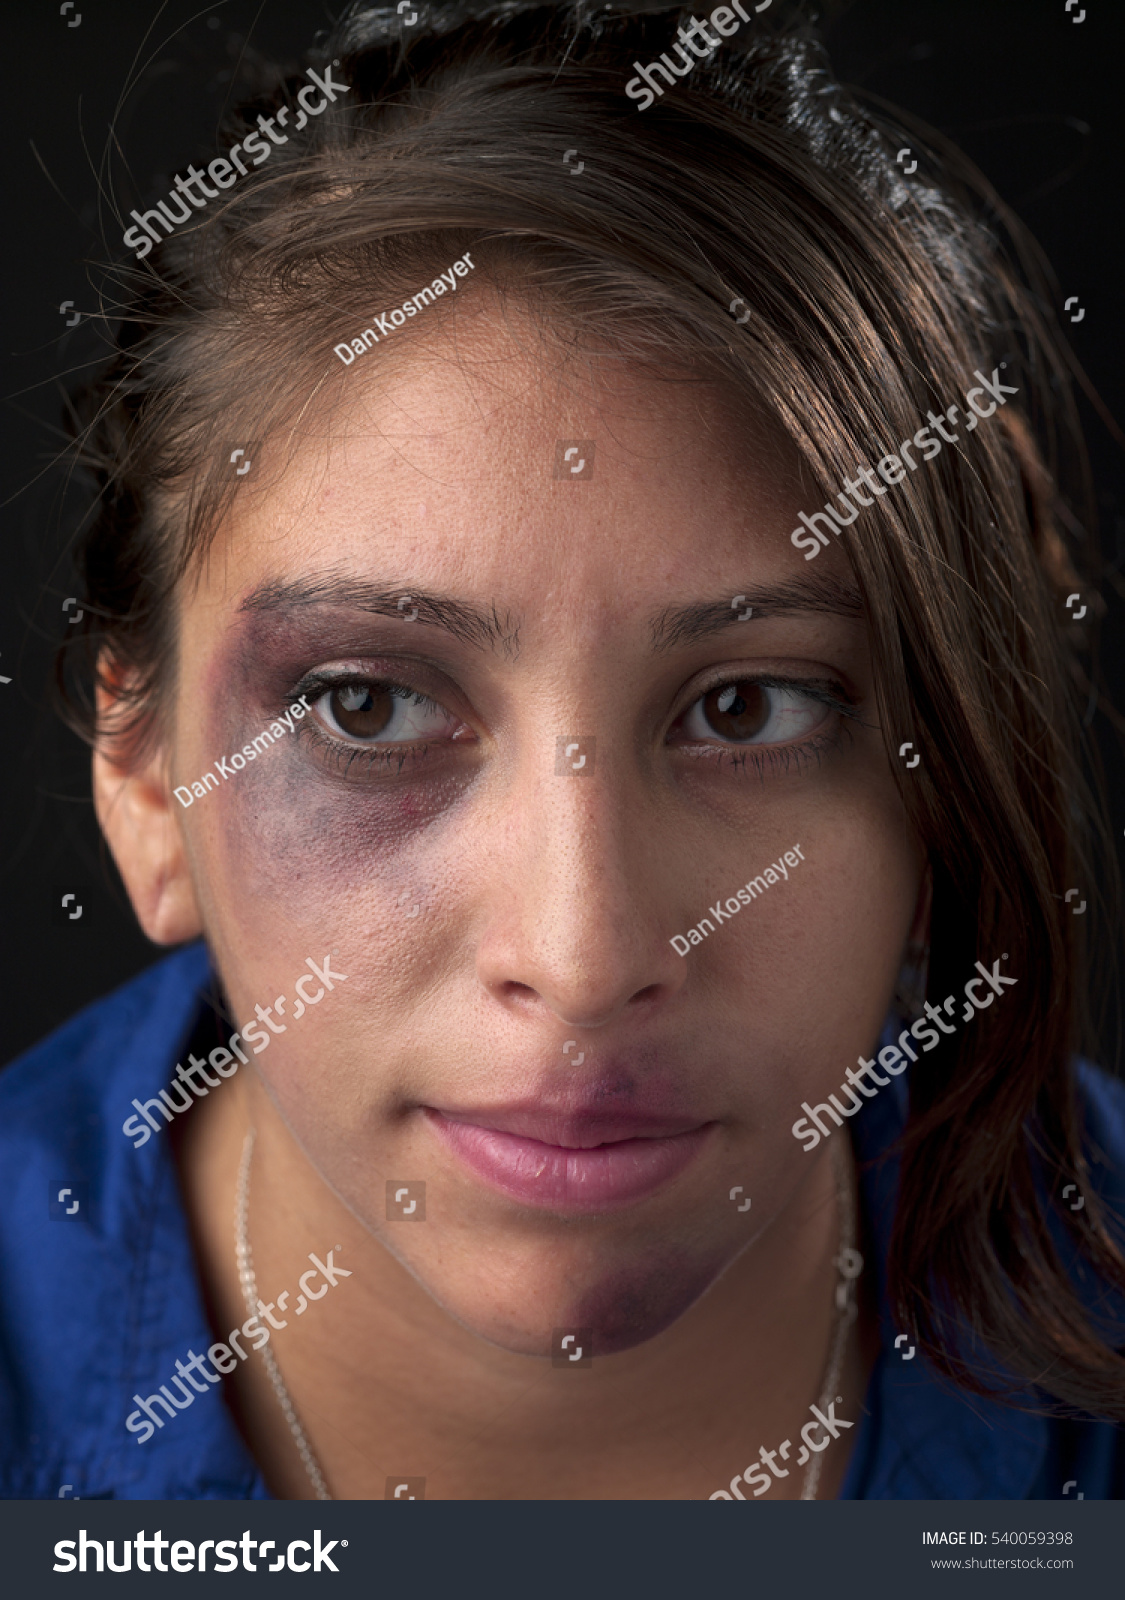 woman body facial injuries which can stock photo 540059398